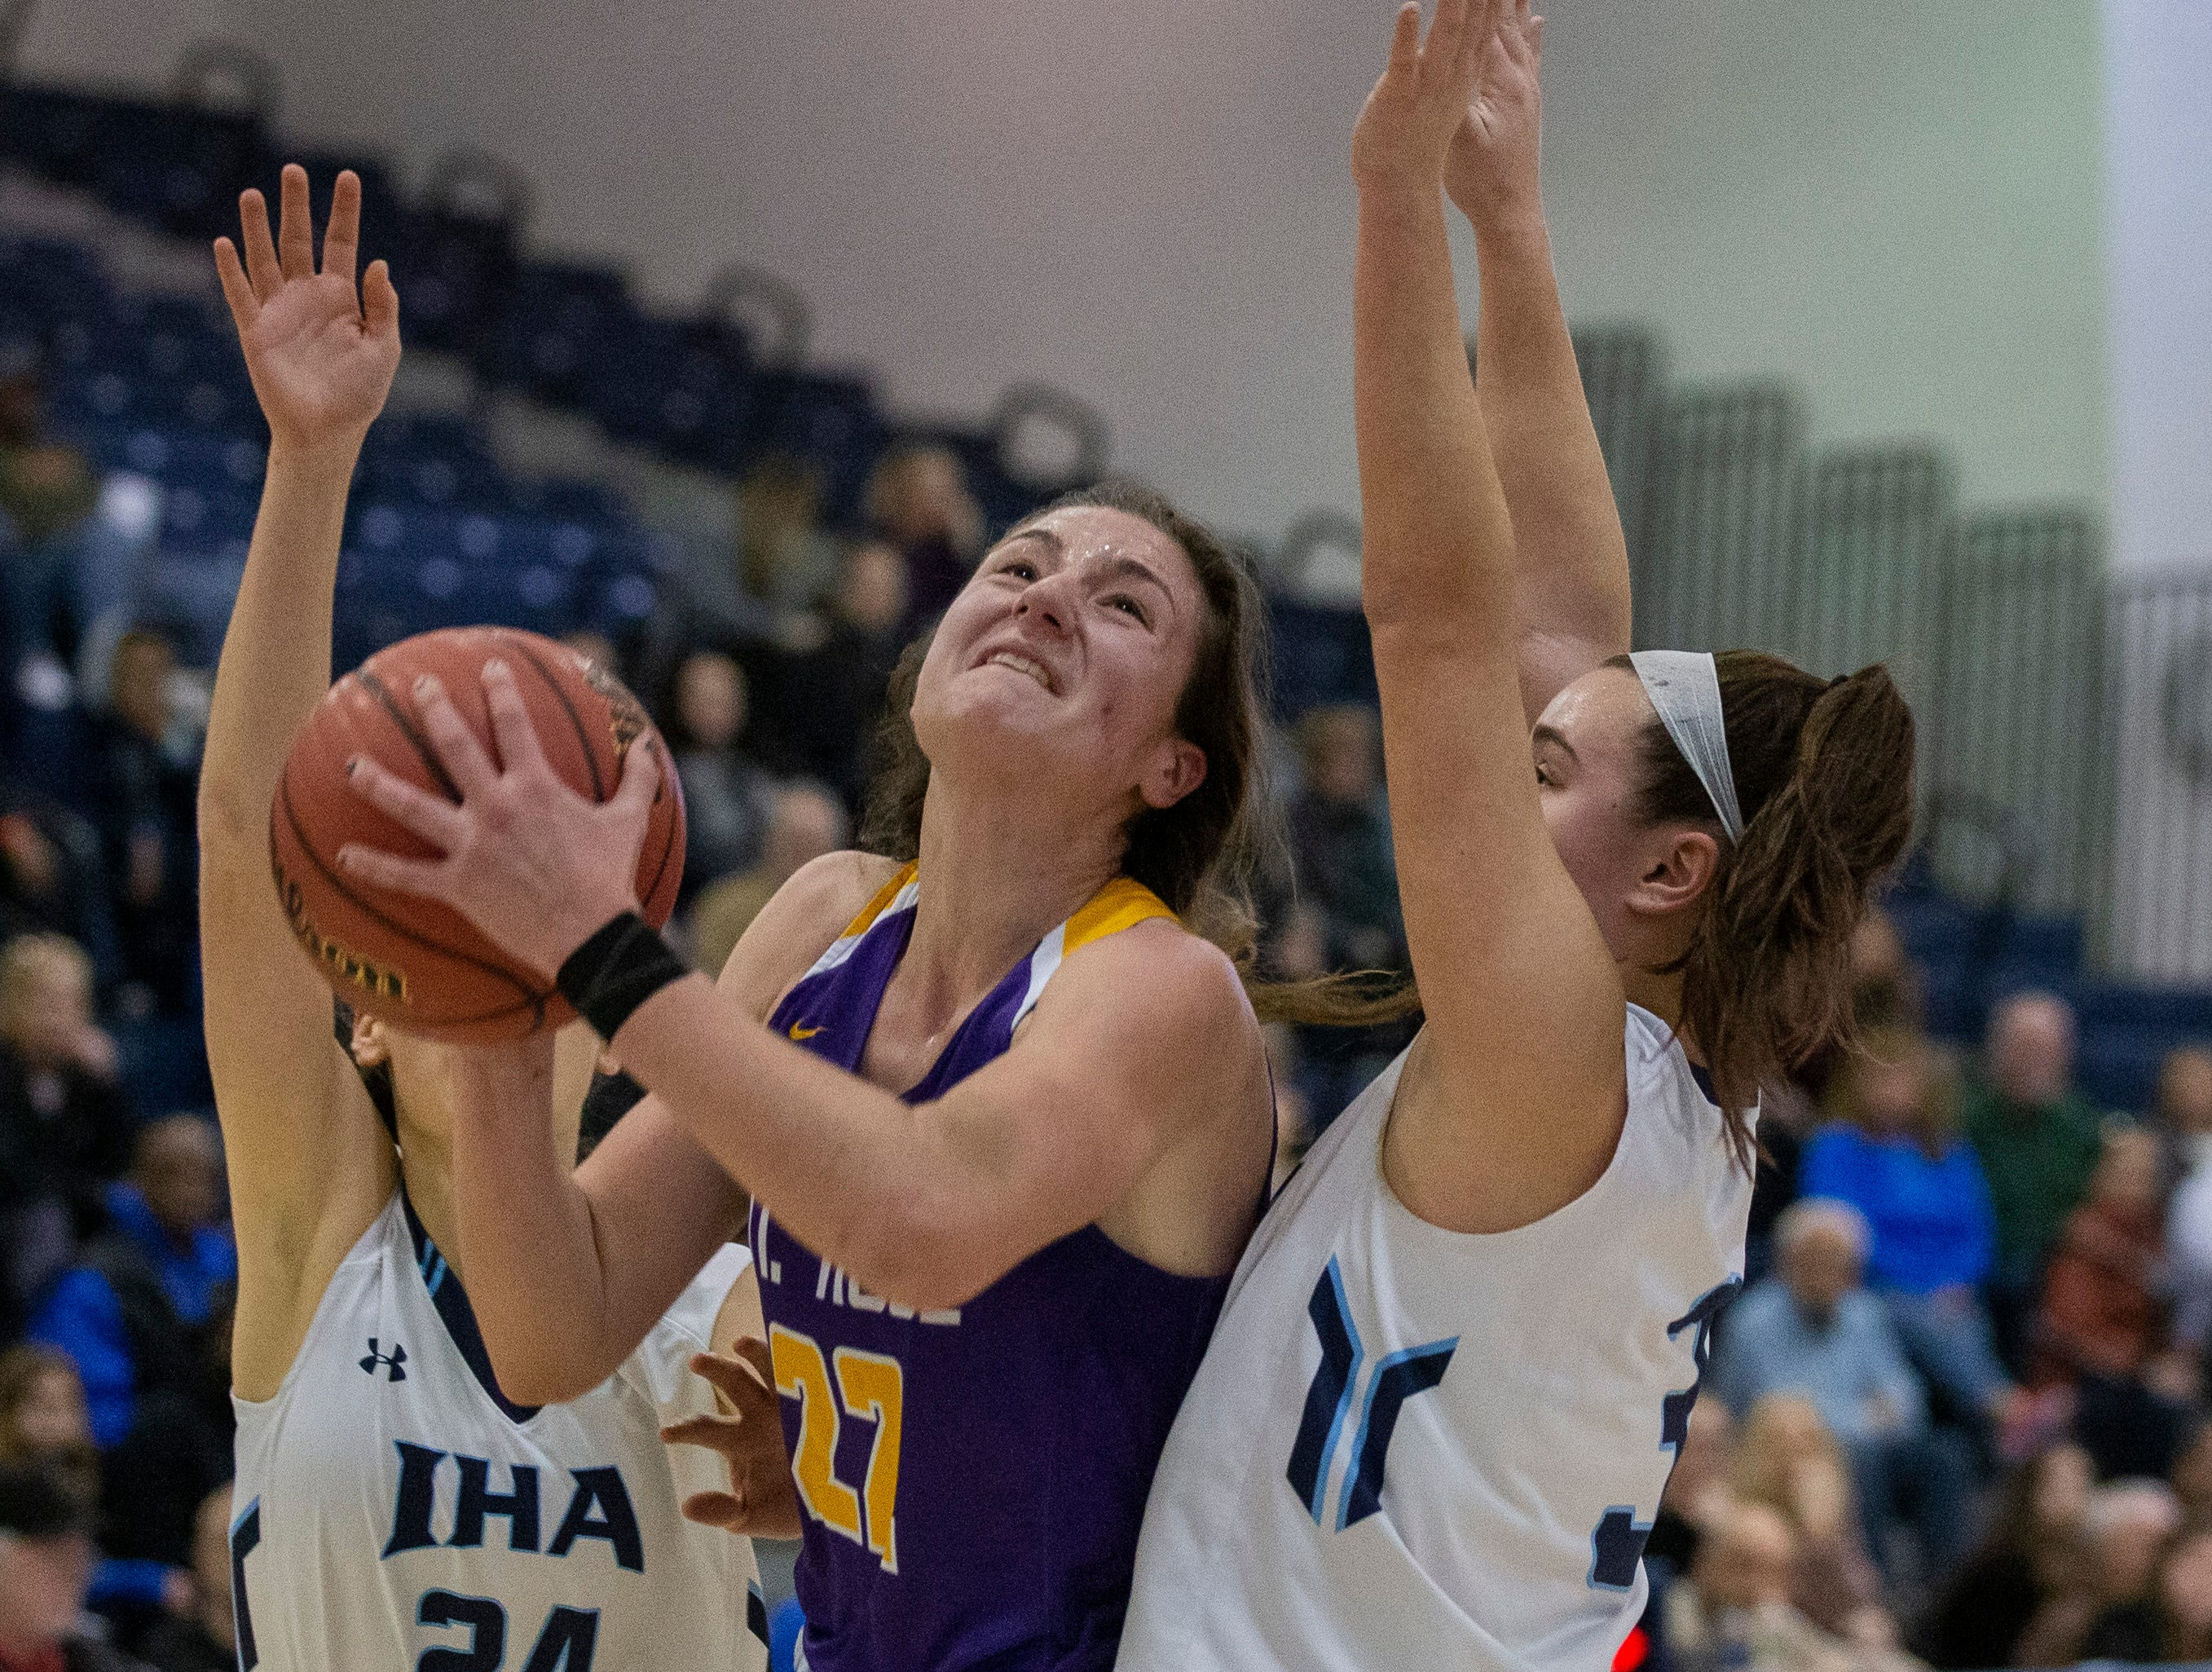 St Rose's Brynn Farrell (22) gets blocked in by IHA's Lexi Edmonds and Brittany Graff during first-half action. St. Rose girls basketball vs. Immaculate Heart Academy in Non-Public A Final in Toms River, N.J. on March 9, 2019.